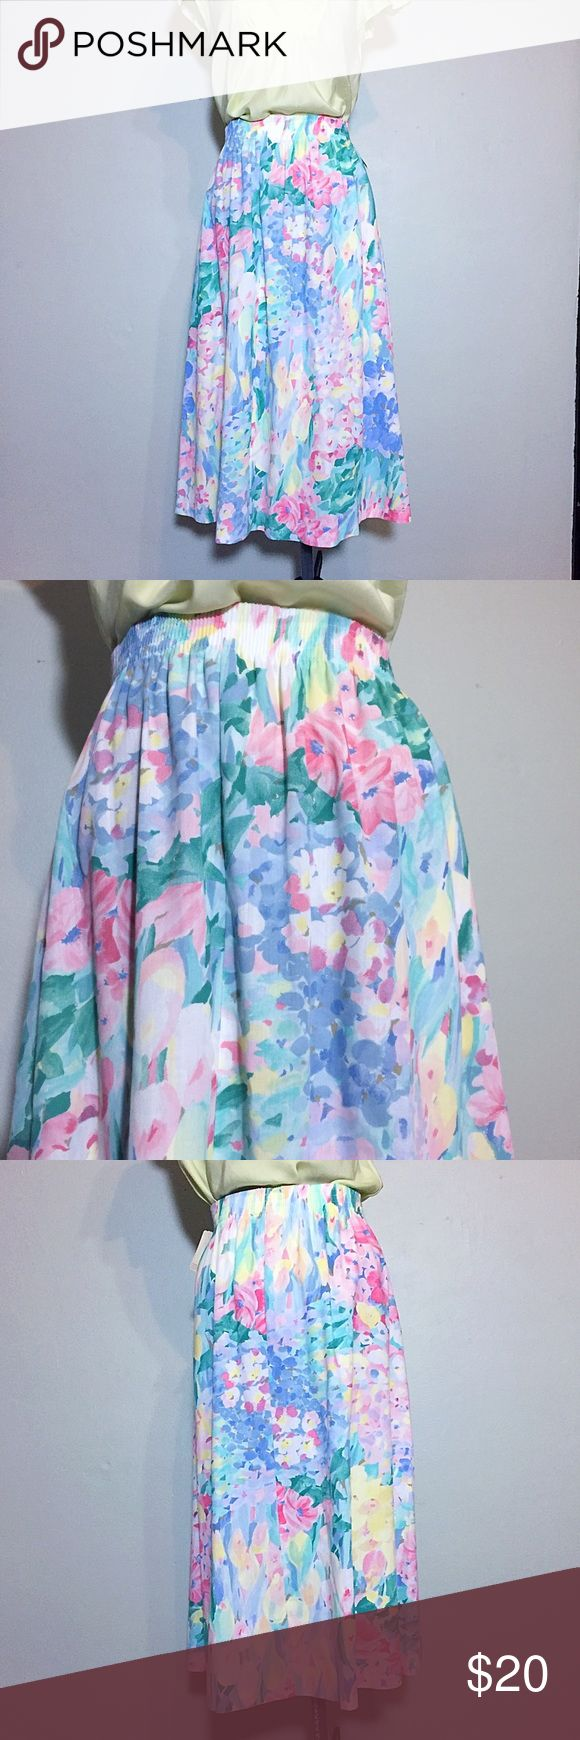 """Vintage New Watercolor Floral Midi Skirt or Dress Rare Find- Vintage with Original Store Tabs Attached! Alfred Dunner Watercolor Floral Midi Skirt or Dress with tags from Foley's Department Store. Wear as a Midi Skirt or a Summer Dress as shown. Size 16 on tag but will fit a variety of sizes- 15-21"""" across top, 27"""" across hips, 40"""" across bottom, 30"""" long. Made in USA. There it's no material tag. Belt shown with dress no included. 611/25/061617 Vintage Skirts Midi"""